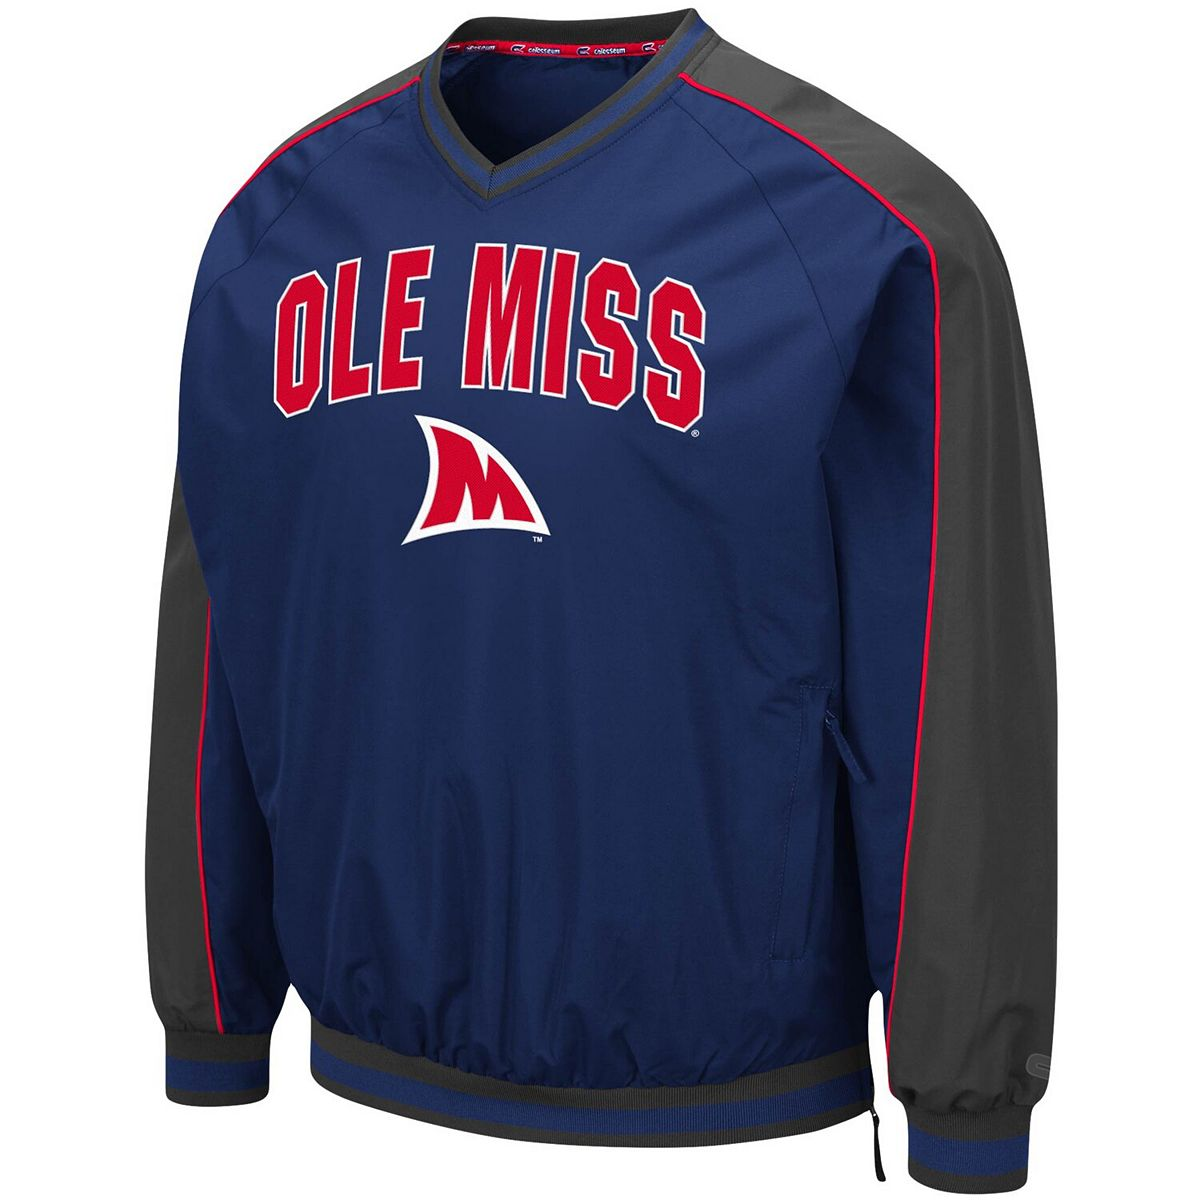 Men's Colosseum Navy Ole Miss Rebels Duffman Pullover Windbreaker irpa5